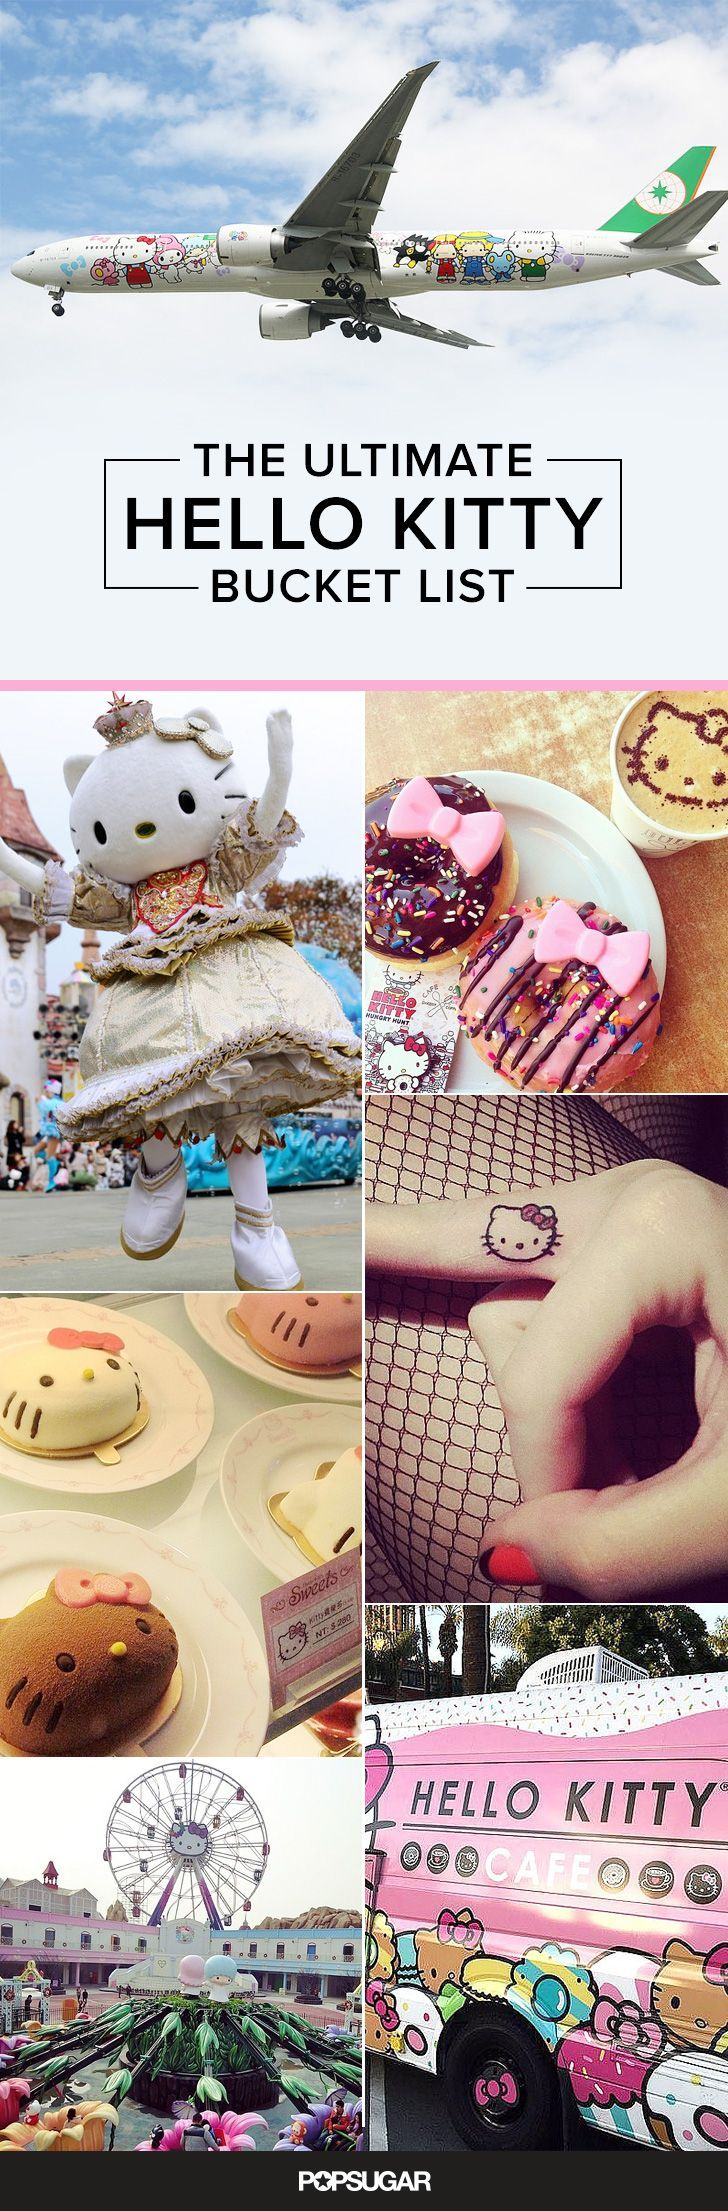 If you are a hardcore Hello Kitty fan –this bucket list is for you.